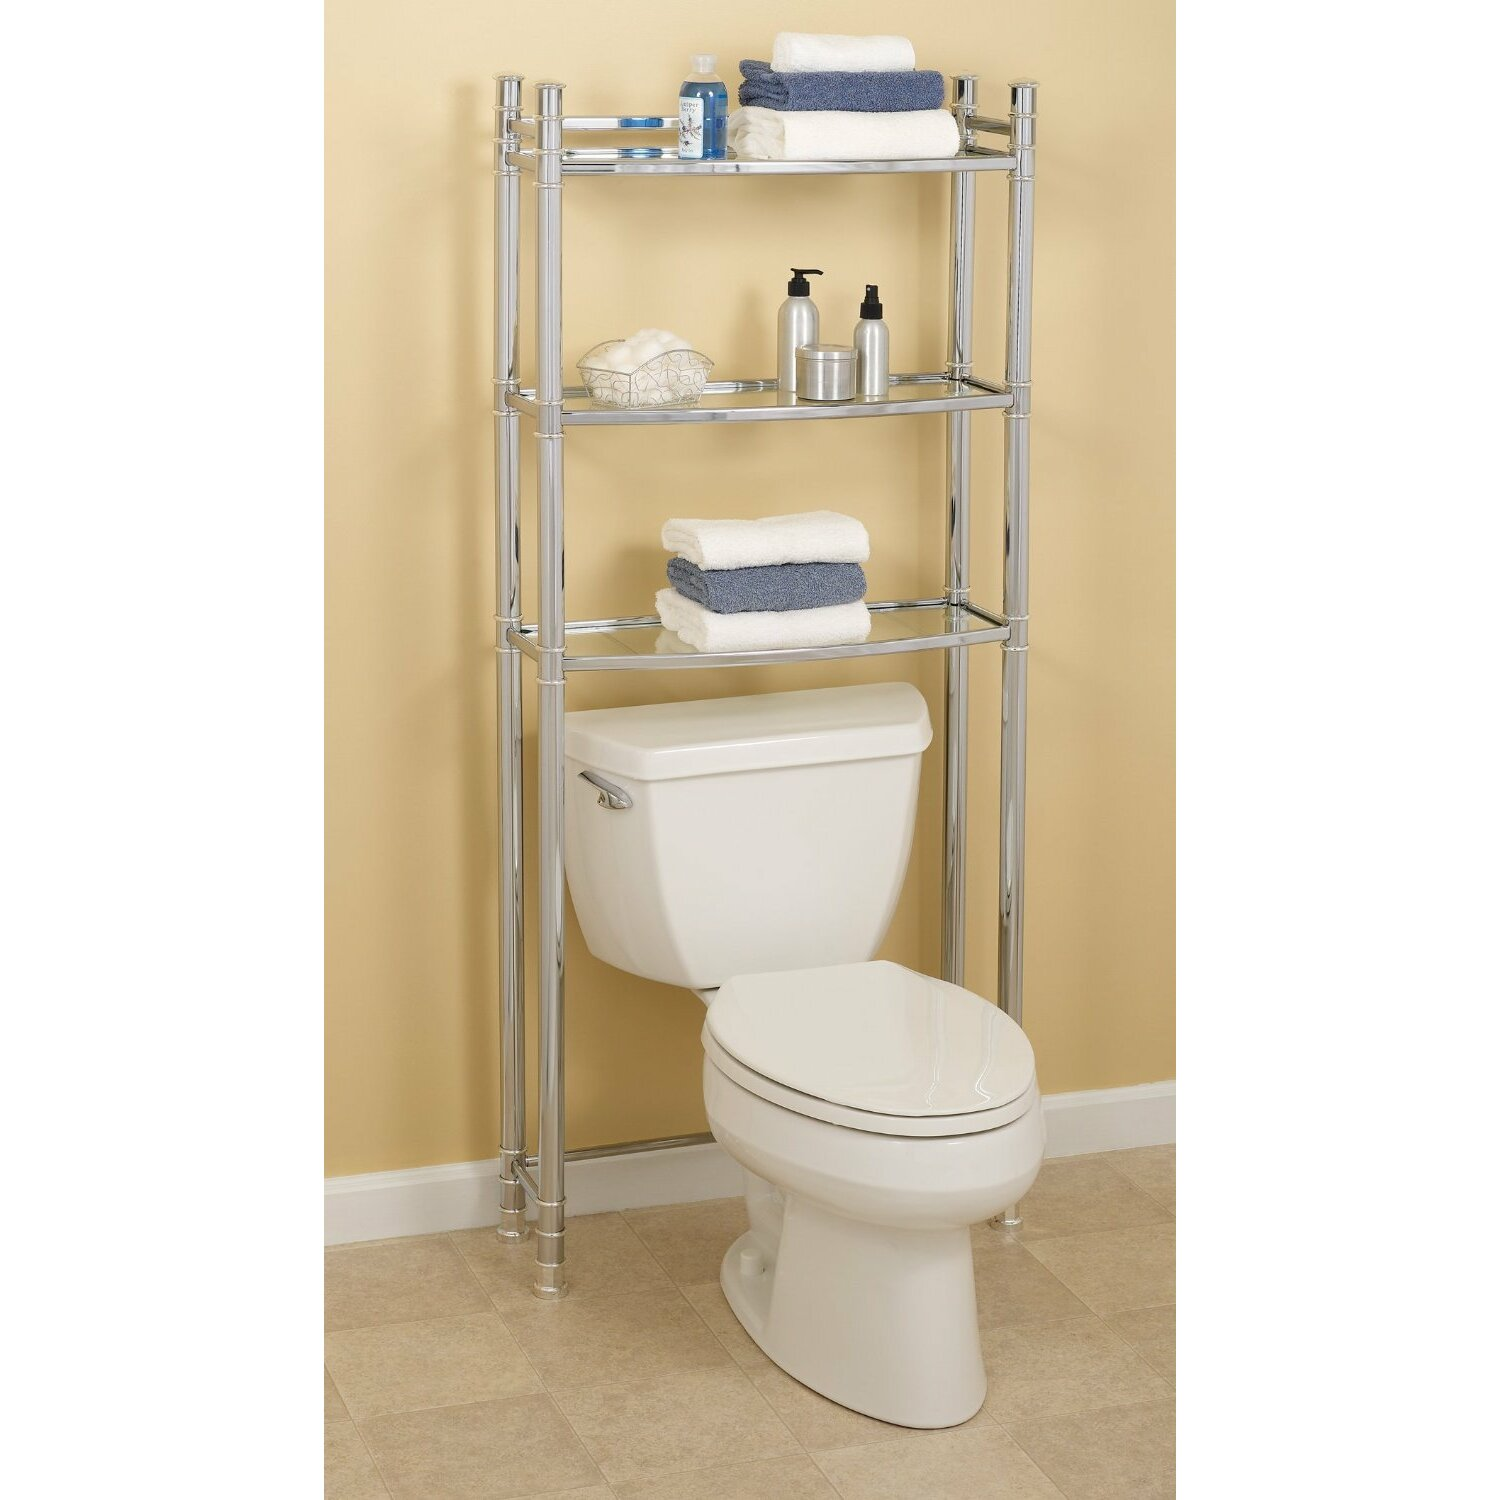 Zenith 25 5 X Free Standing Over The Toilet Reviews Wayfair